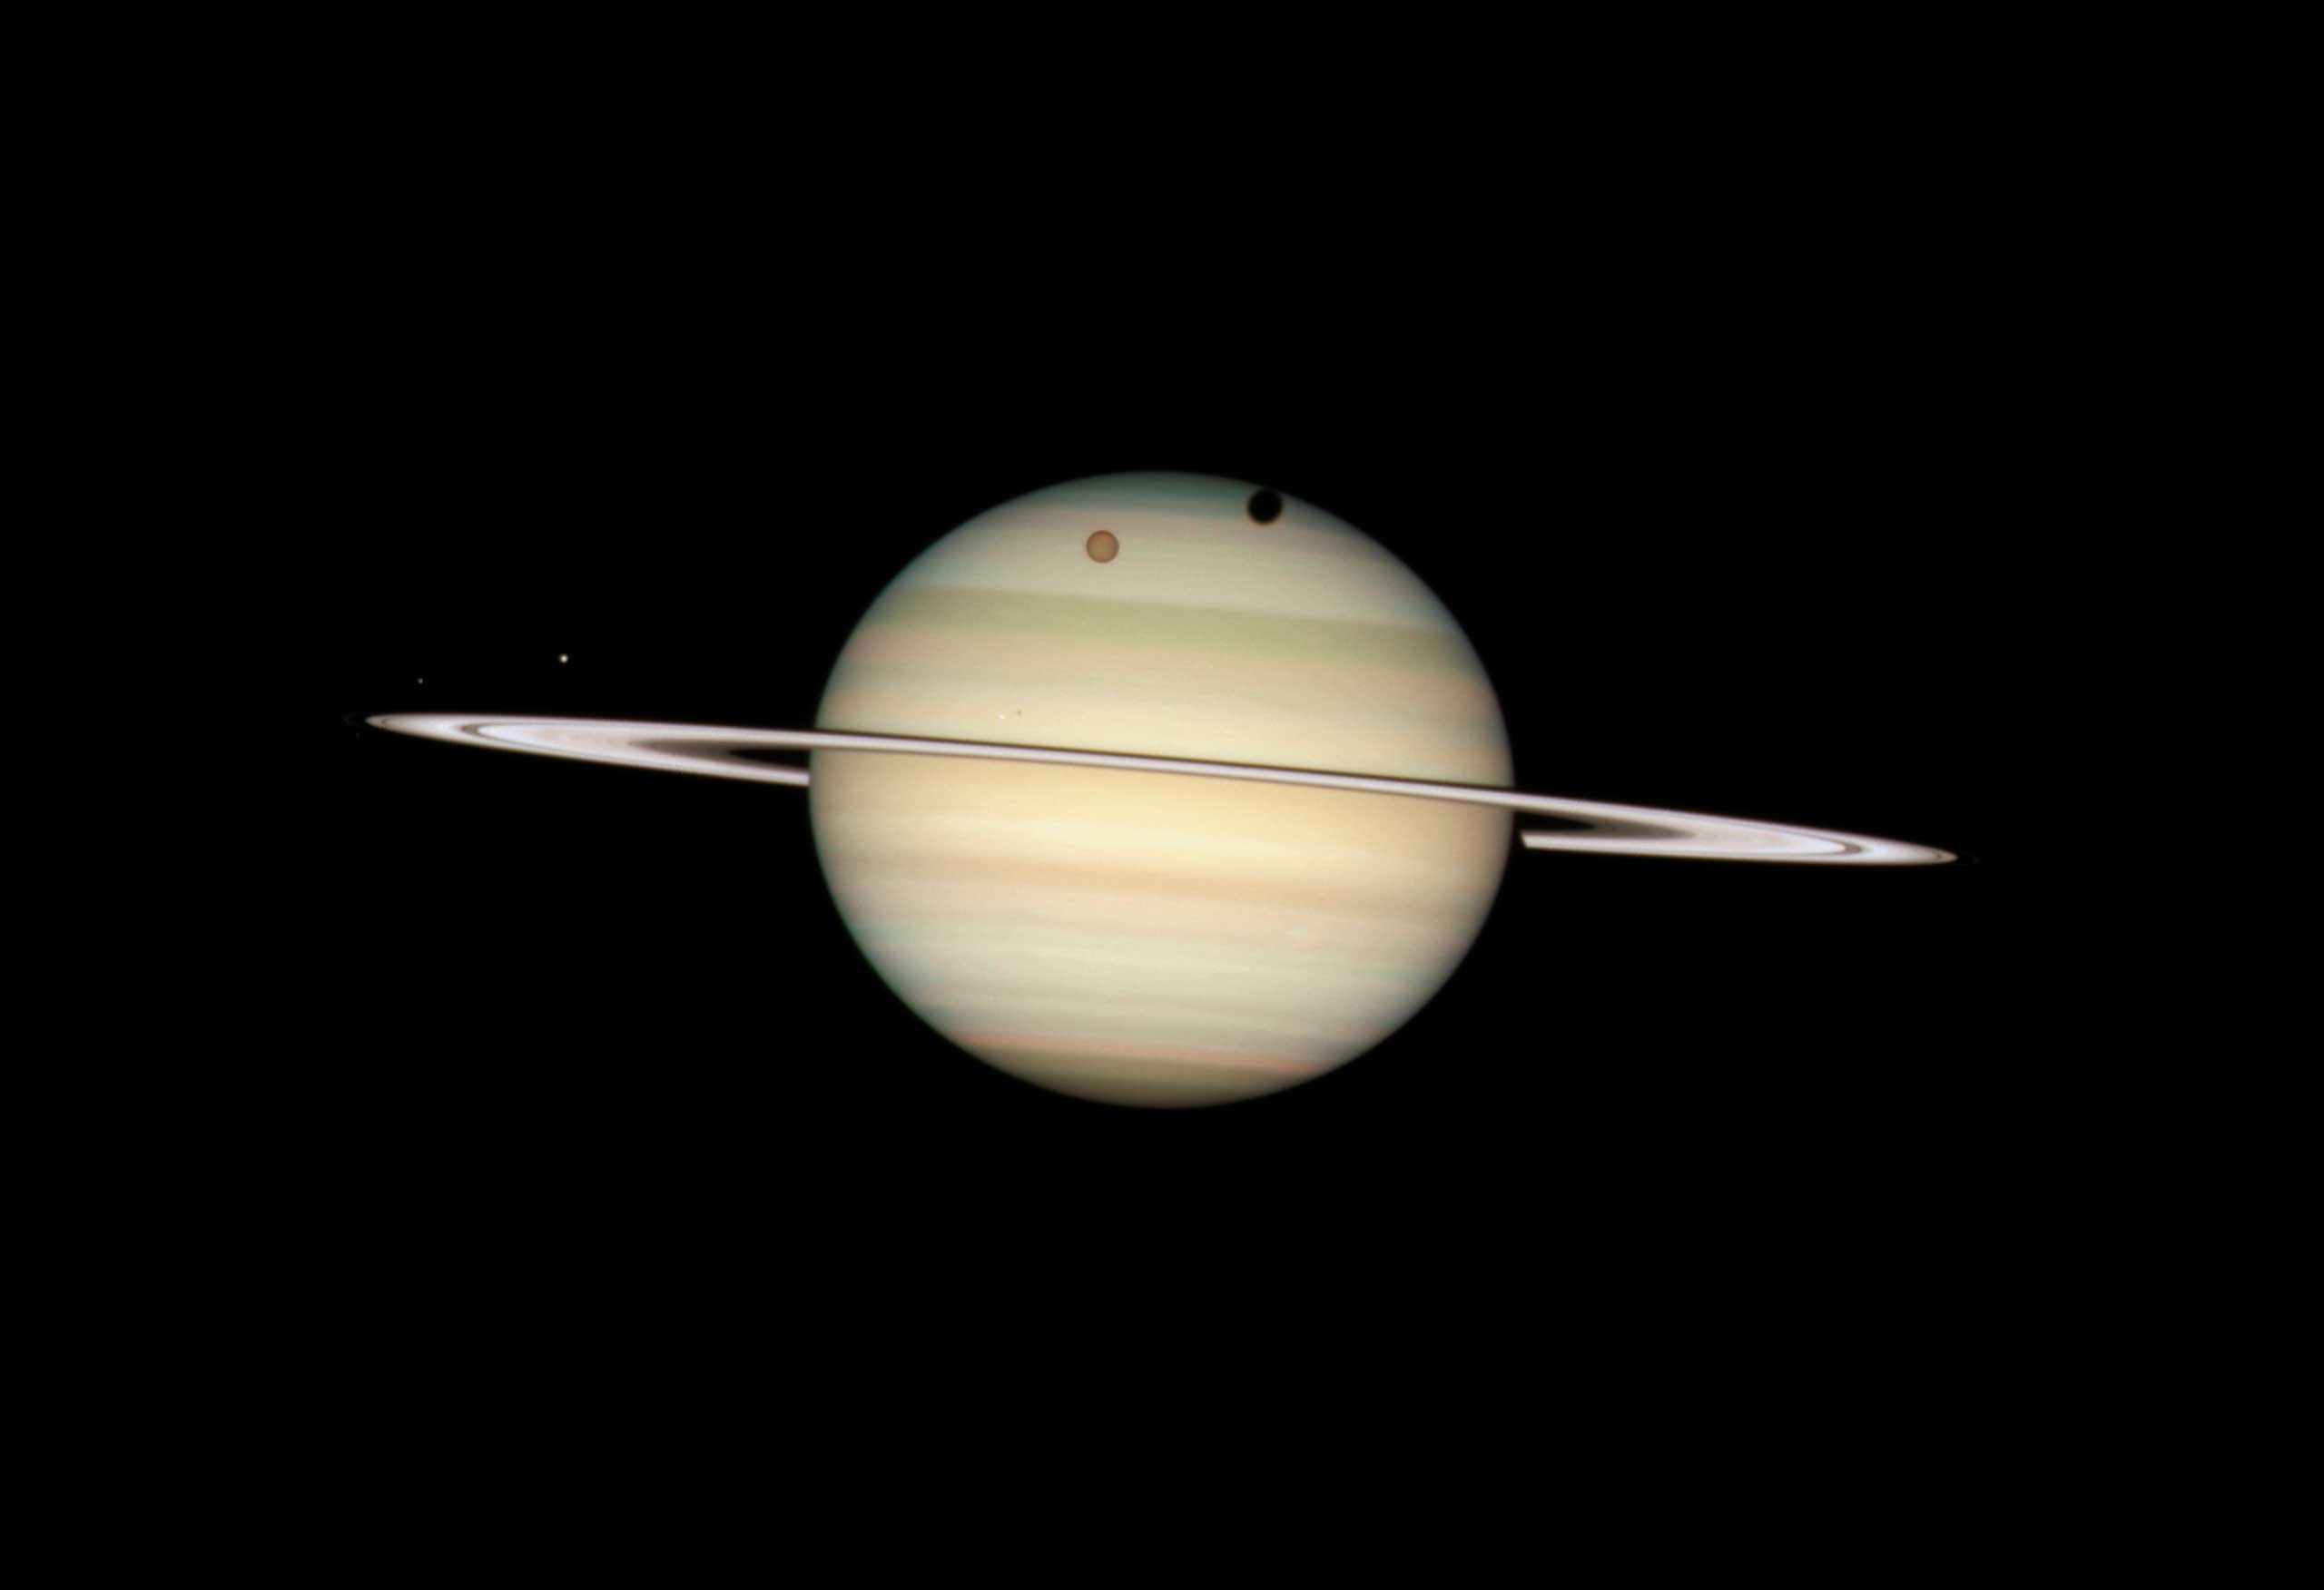 Saturn:                                                              In this photo, Hubble captured the four moons of Saturn passing in front of their parent planet. The giant orange moon Titan casts a large shadow onto Saturn's north polar hood. Below Titan, near the ring plane and to the left is the moon Mimas, casting a much smaller shadow onto Saturn's equatorial cloud tops. Farther to the left, and off Saturn's disk, are the bright moon Dione and the fainter moon Enceladus.                                                              Image released on March 17, 2009